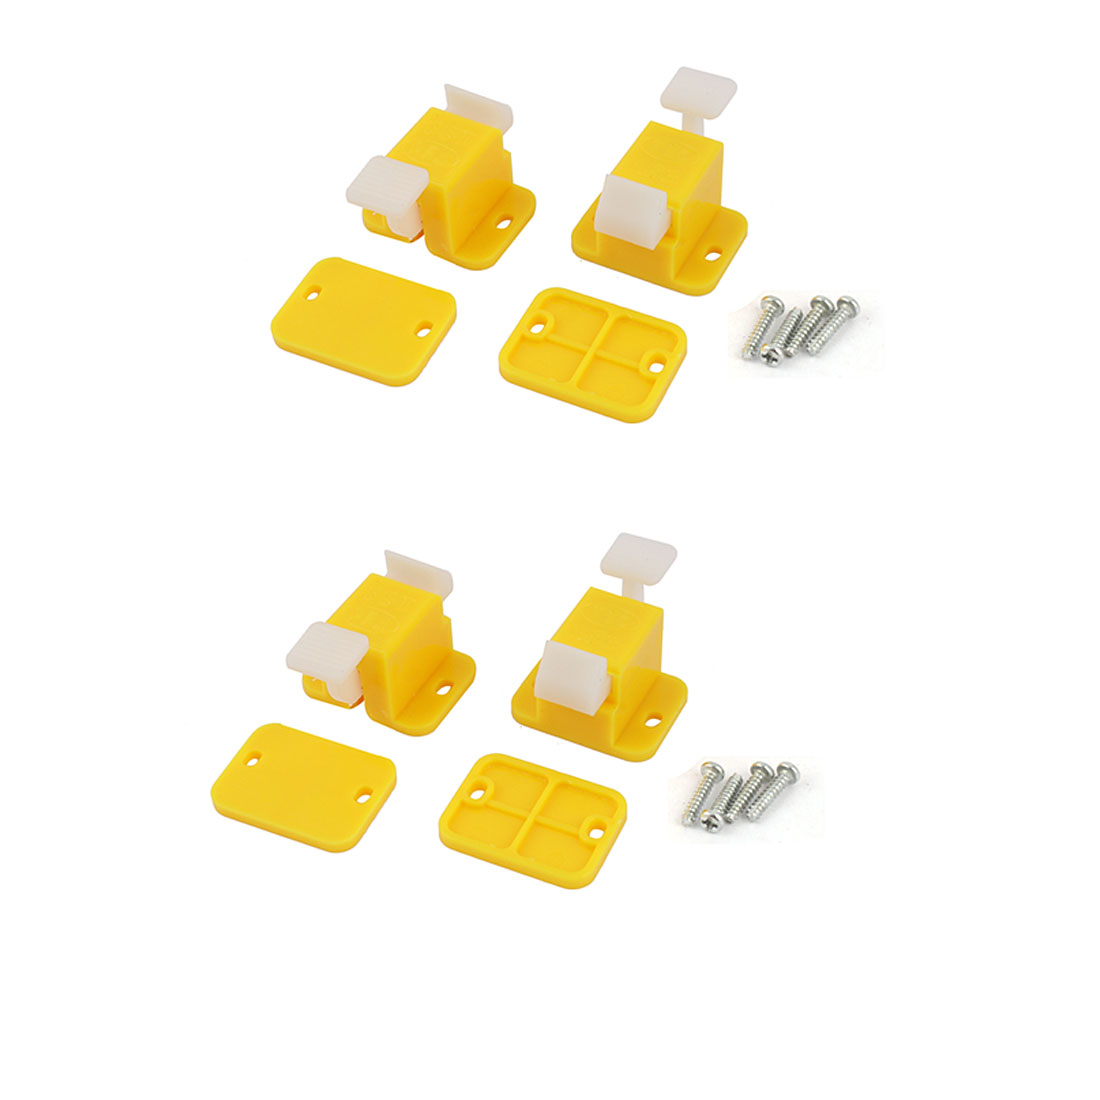 4 Pcs Plastic Prototype PCB Board Test Fixture Jig Yellow White